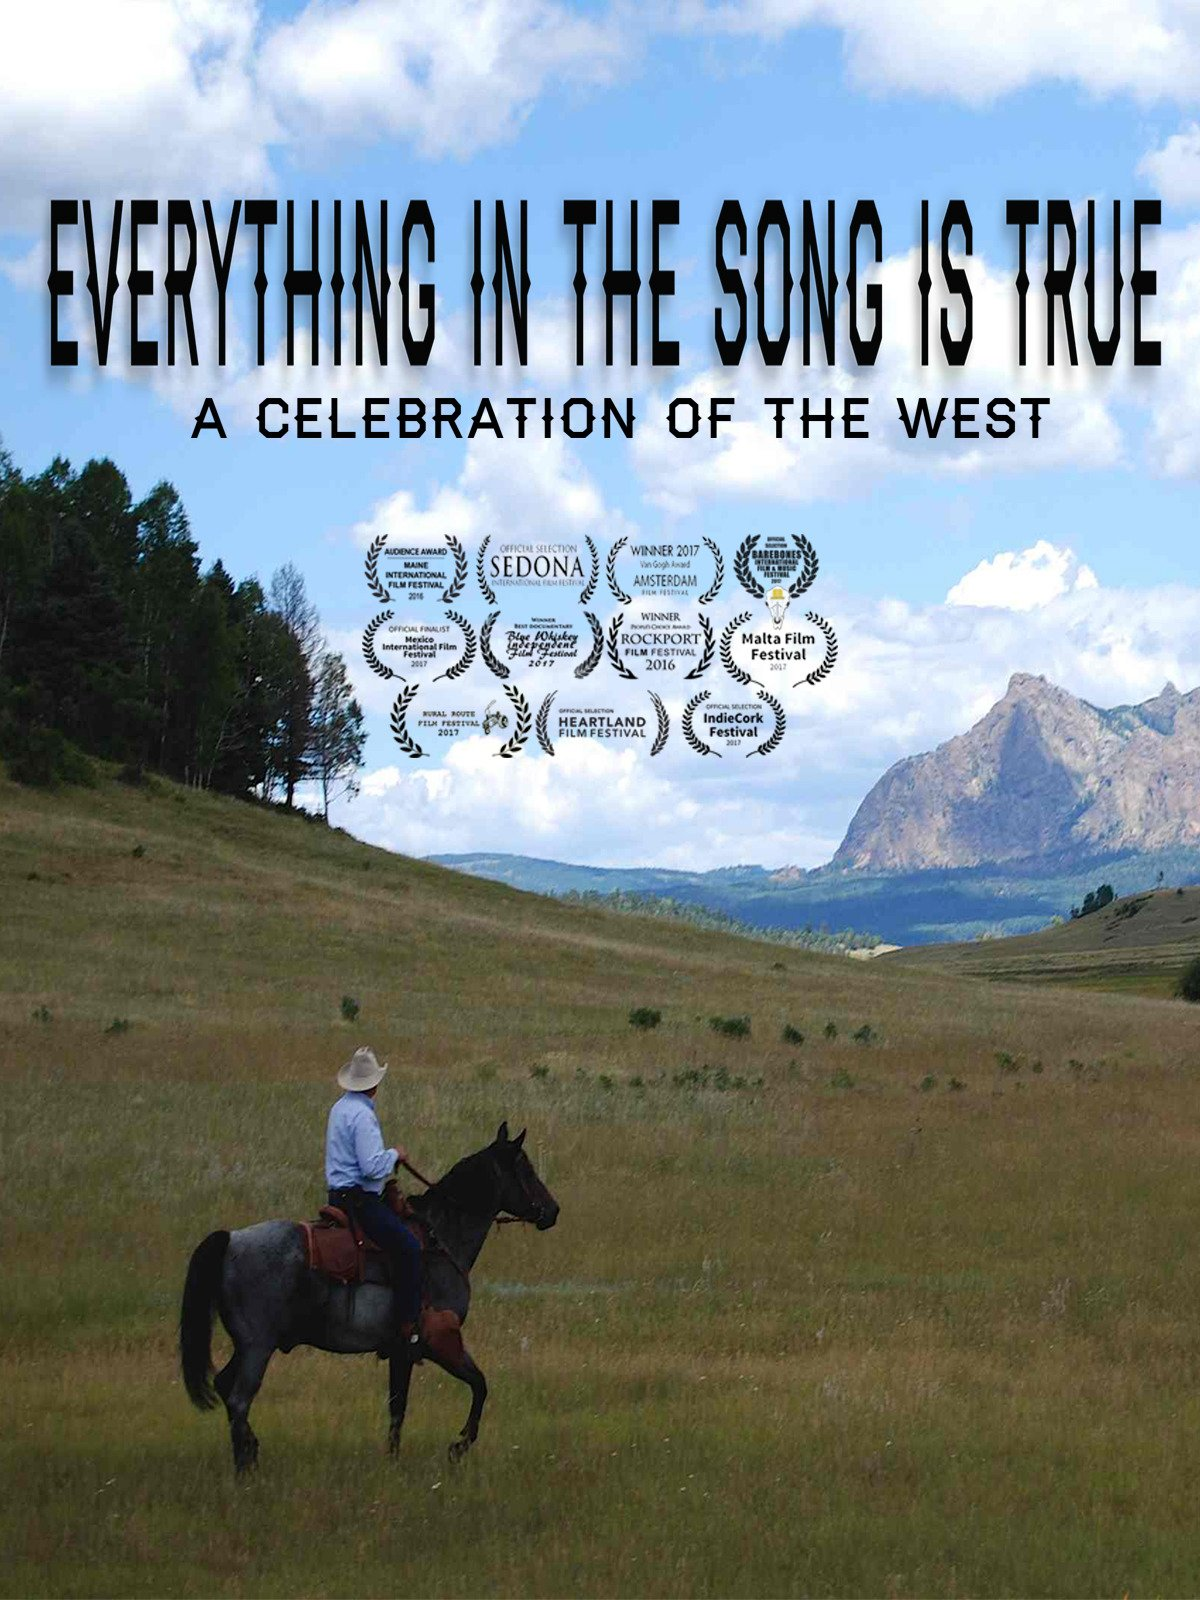 Amazon.com: Everything in the Song is True: Jeff Nourse, Gary ...